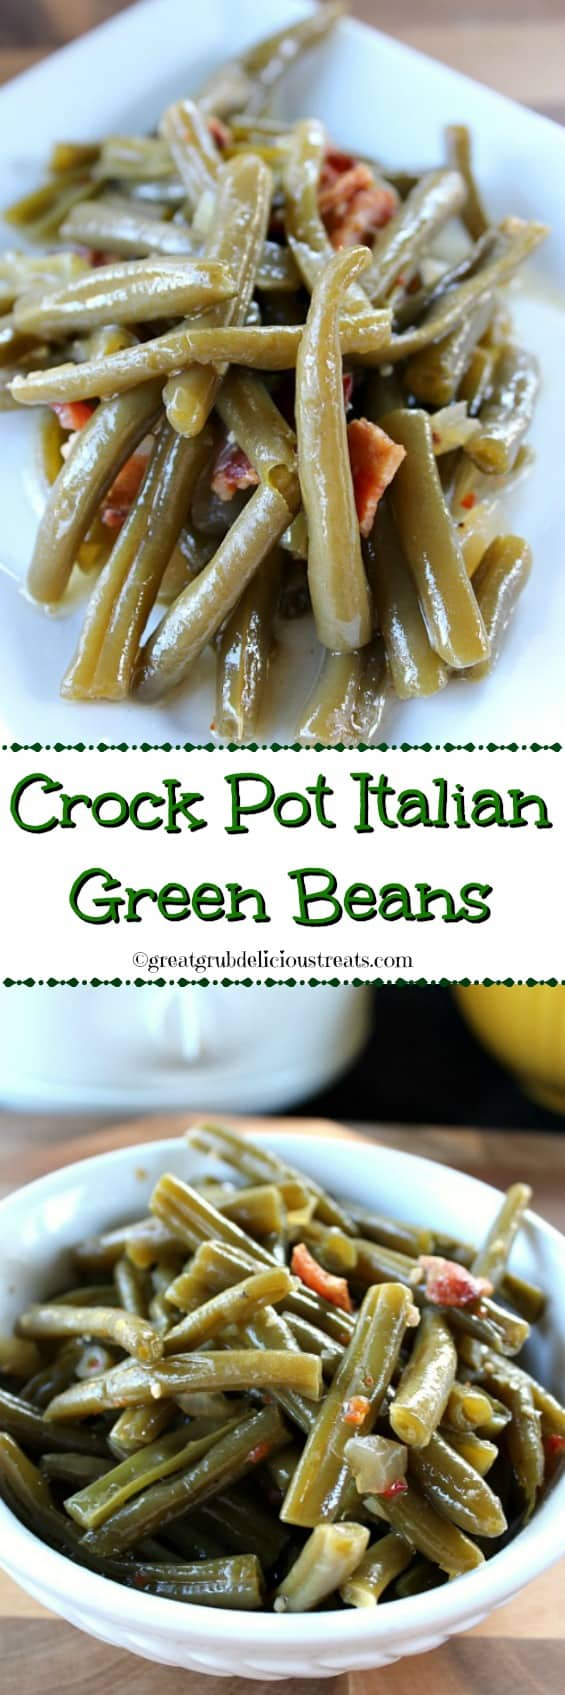 Crock Pot Italian Green Beans